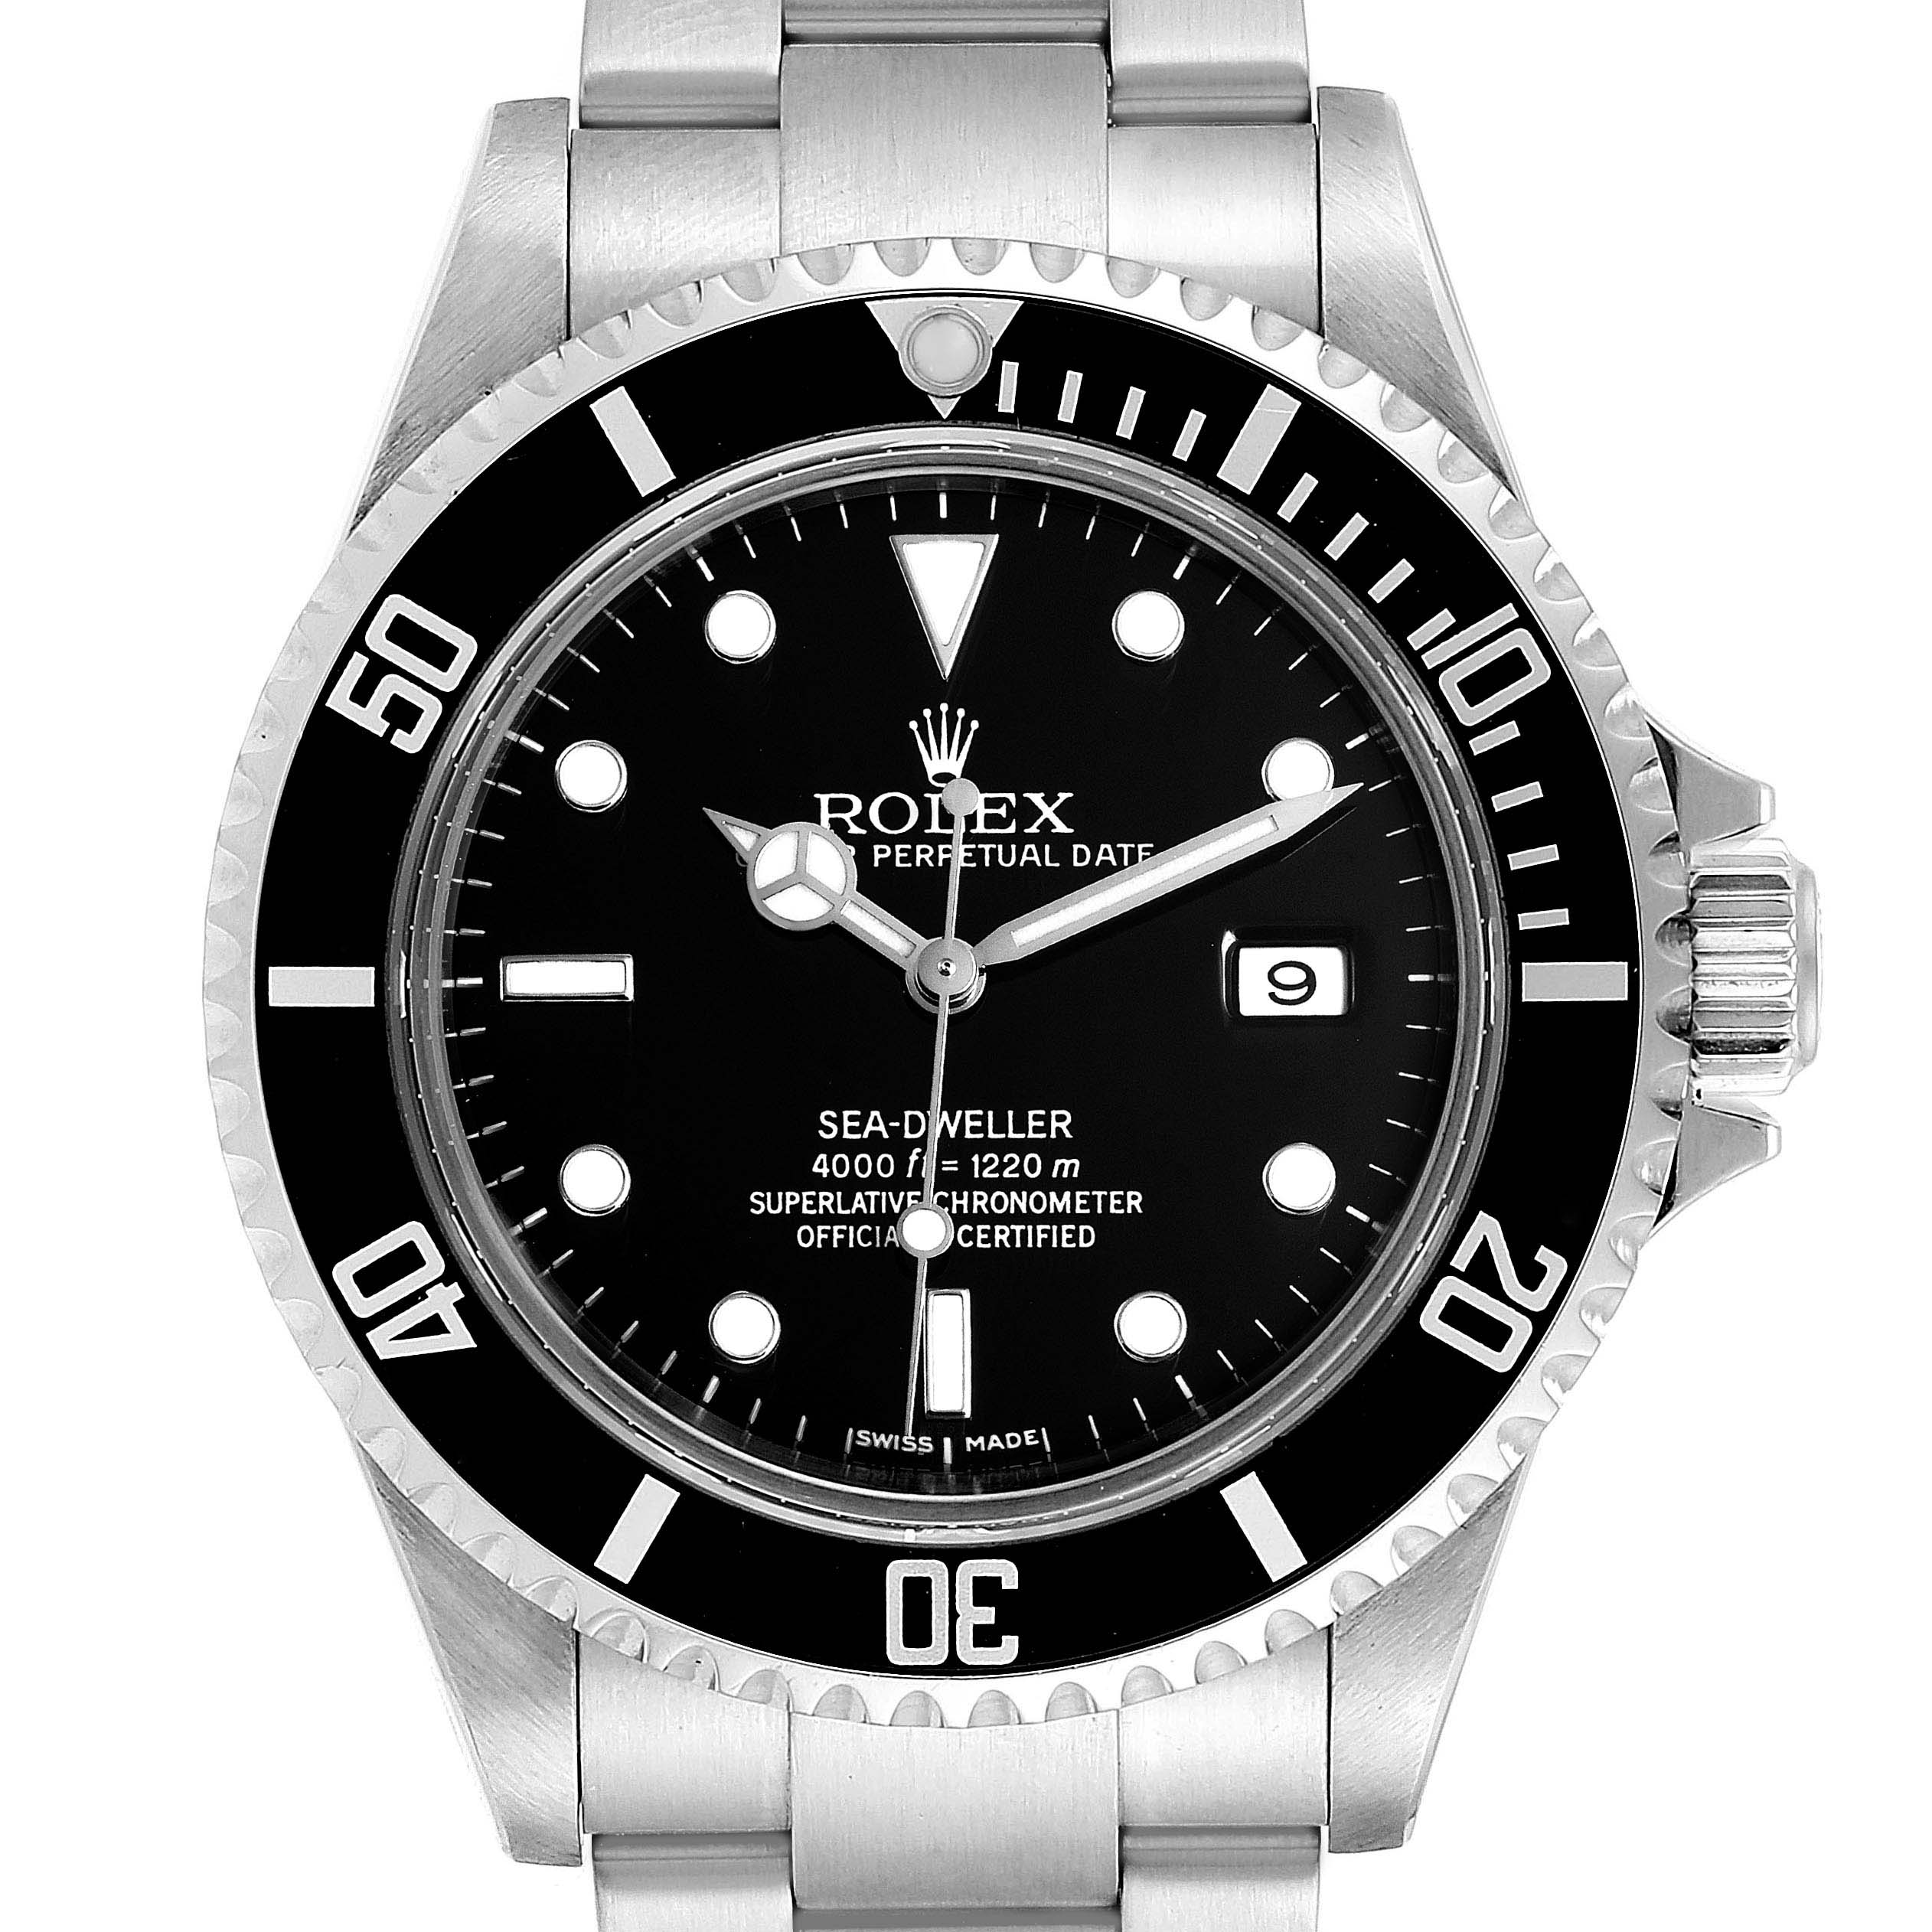 Photo of Rolex Seadweller Black Dial Oyster Bracelet Mens Watch 16600 Box Papers